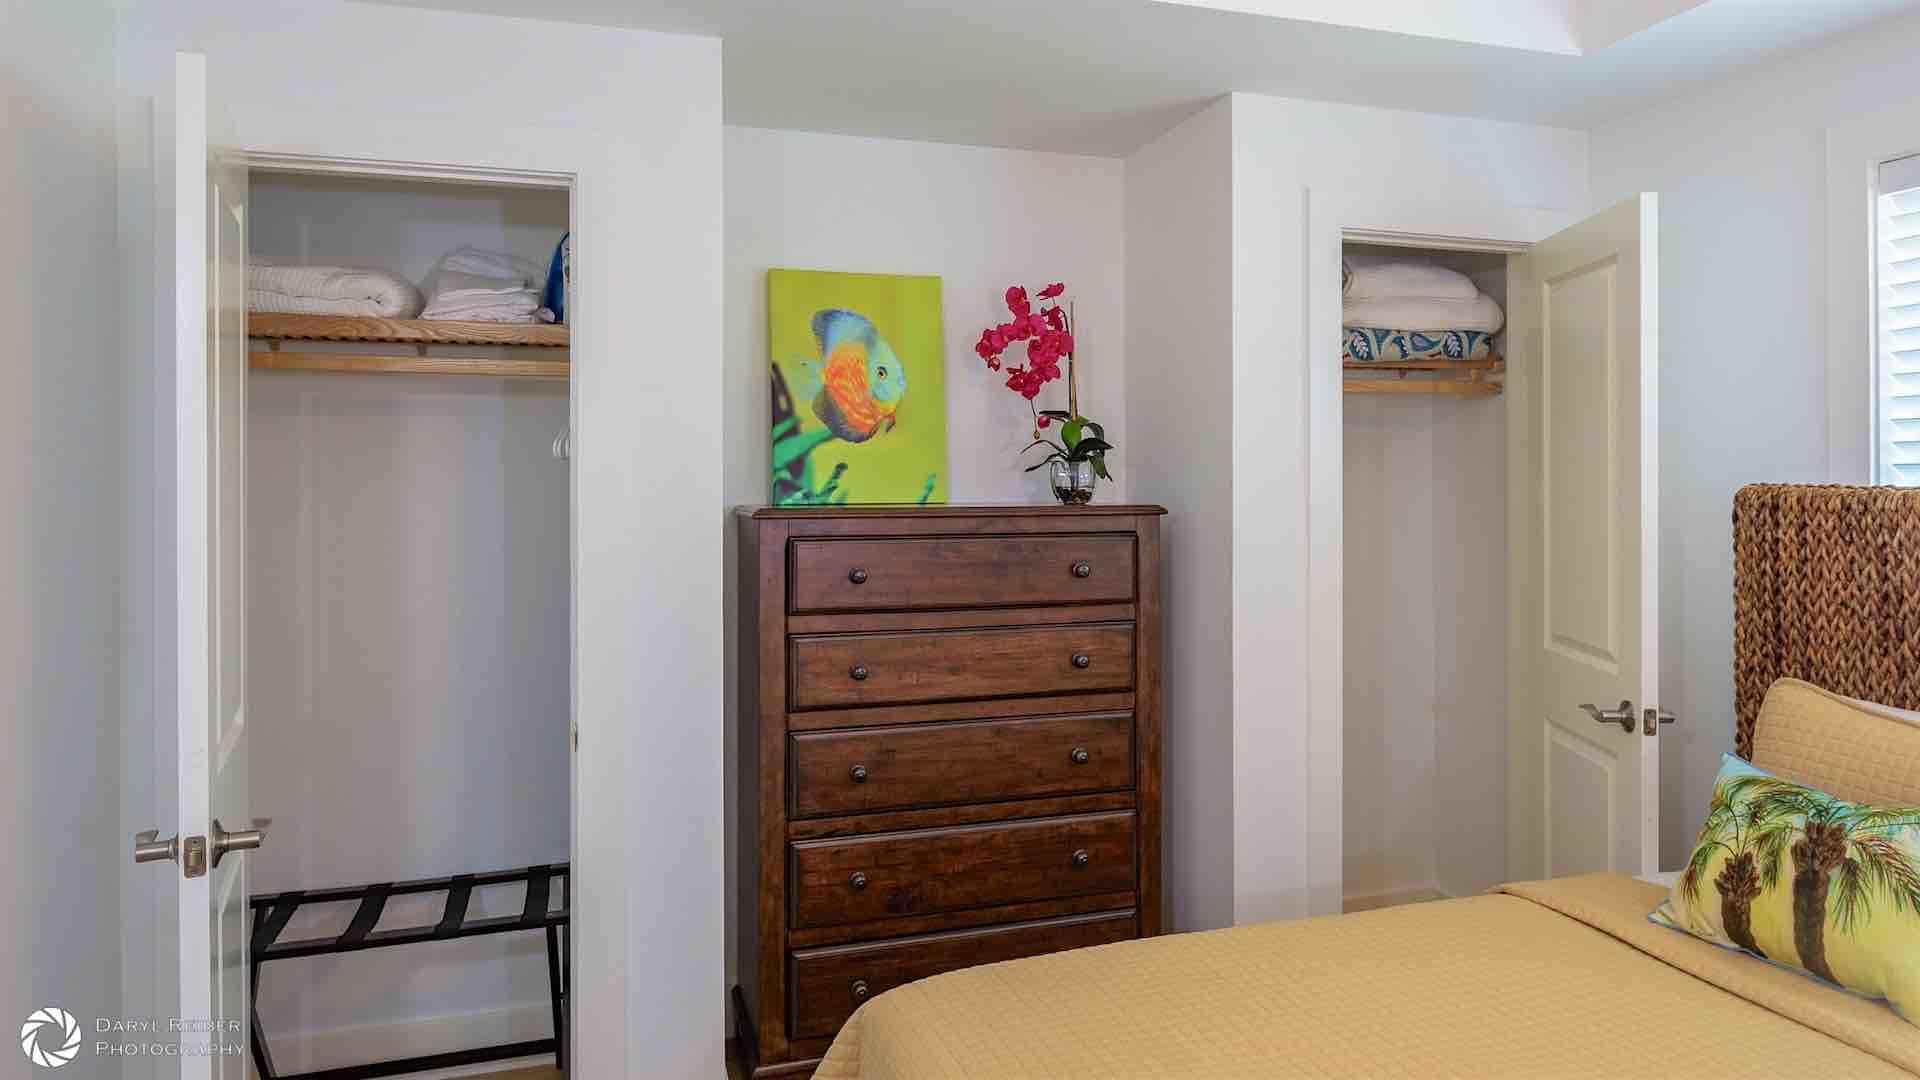 The third bedroom has two spacious closets and a flat screen TV...